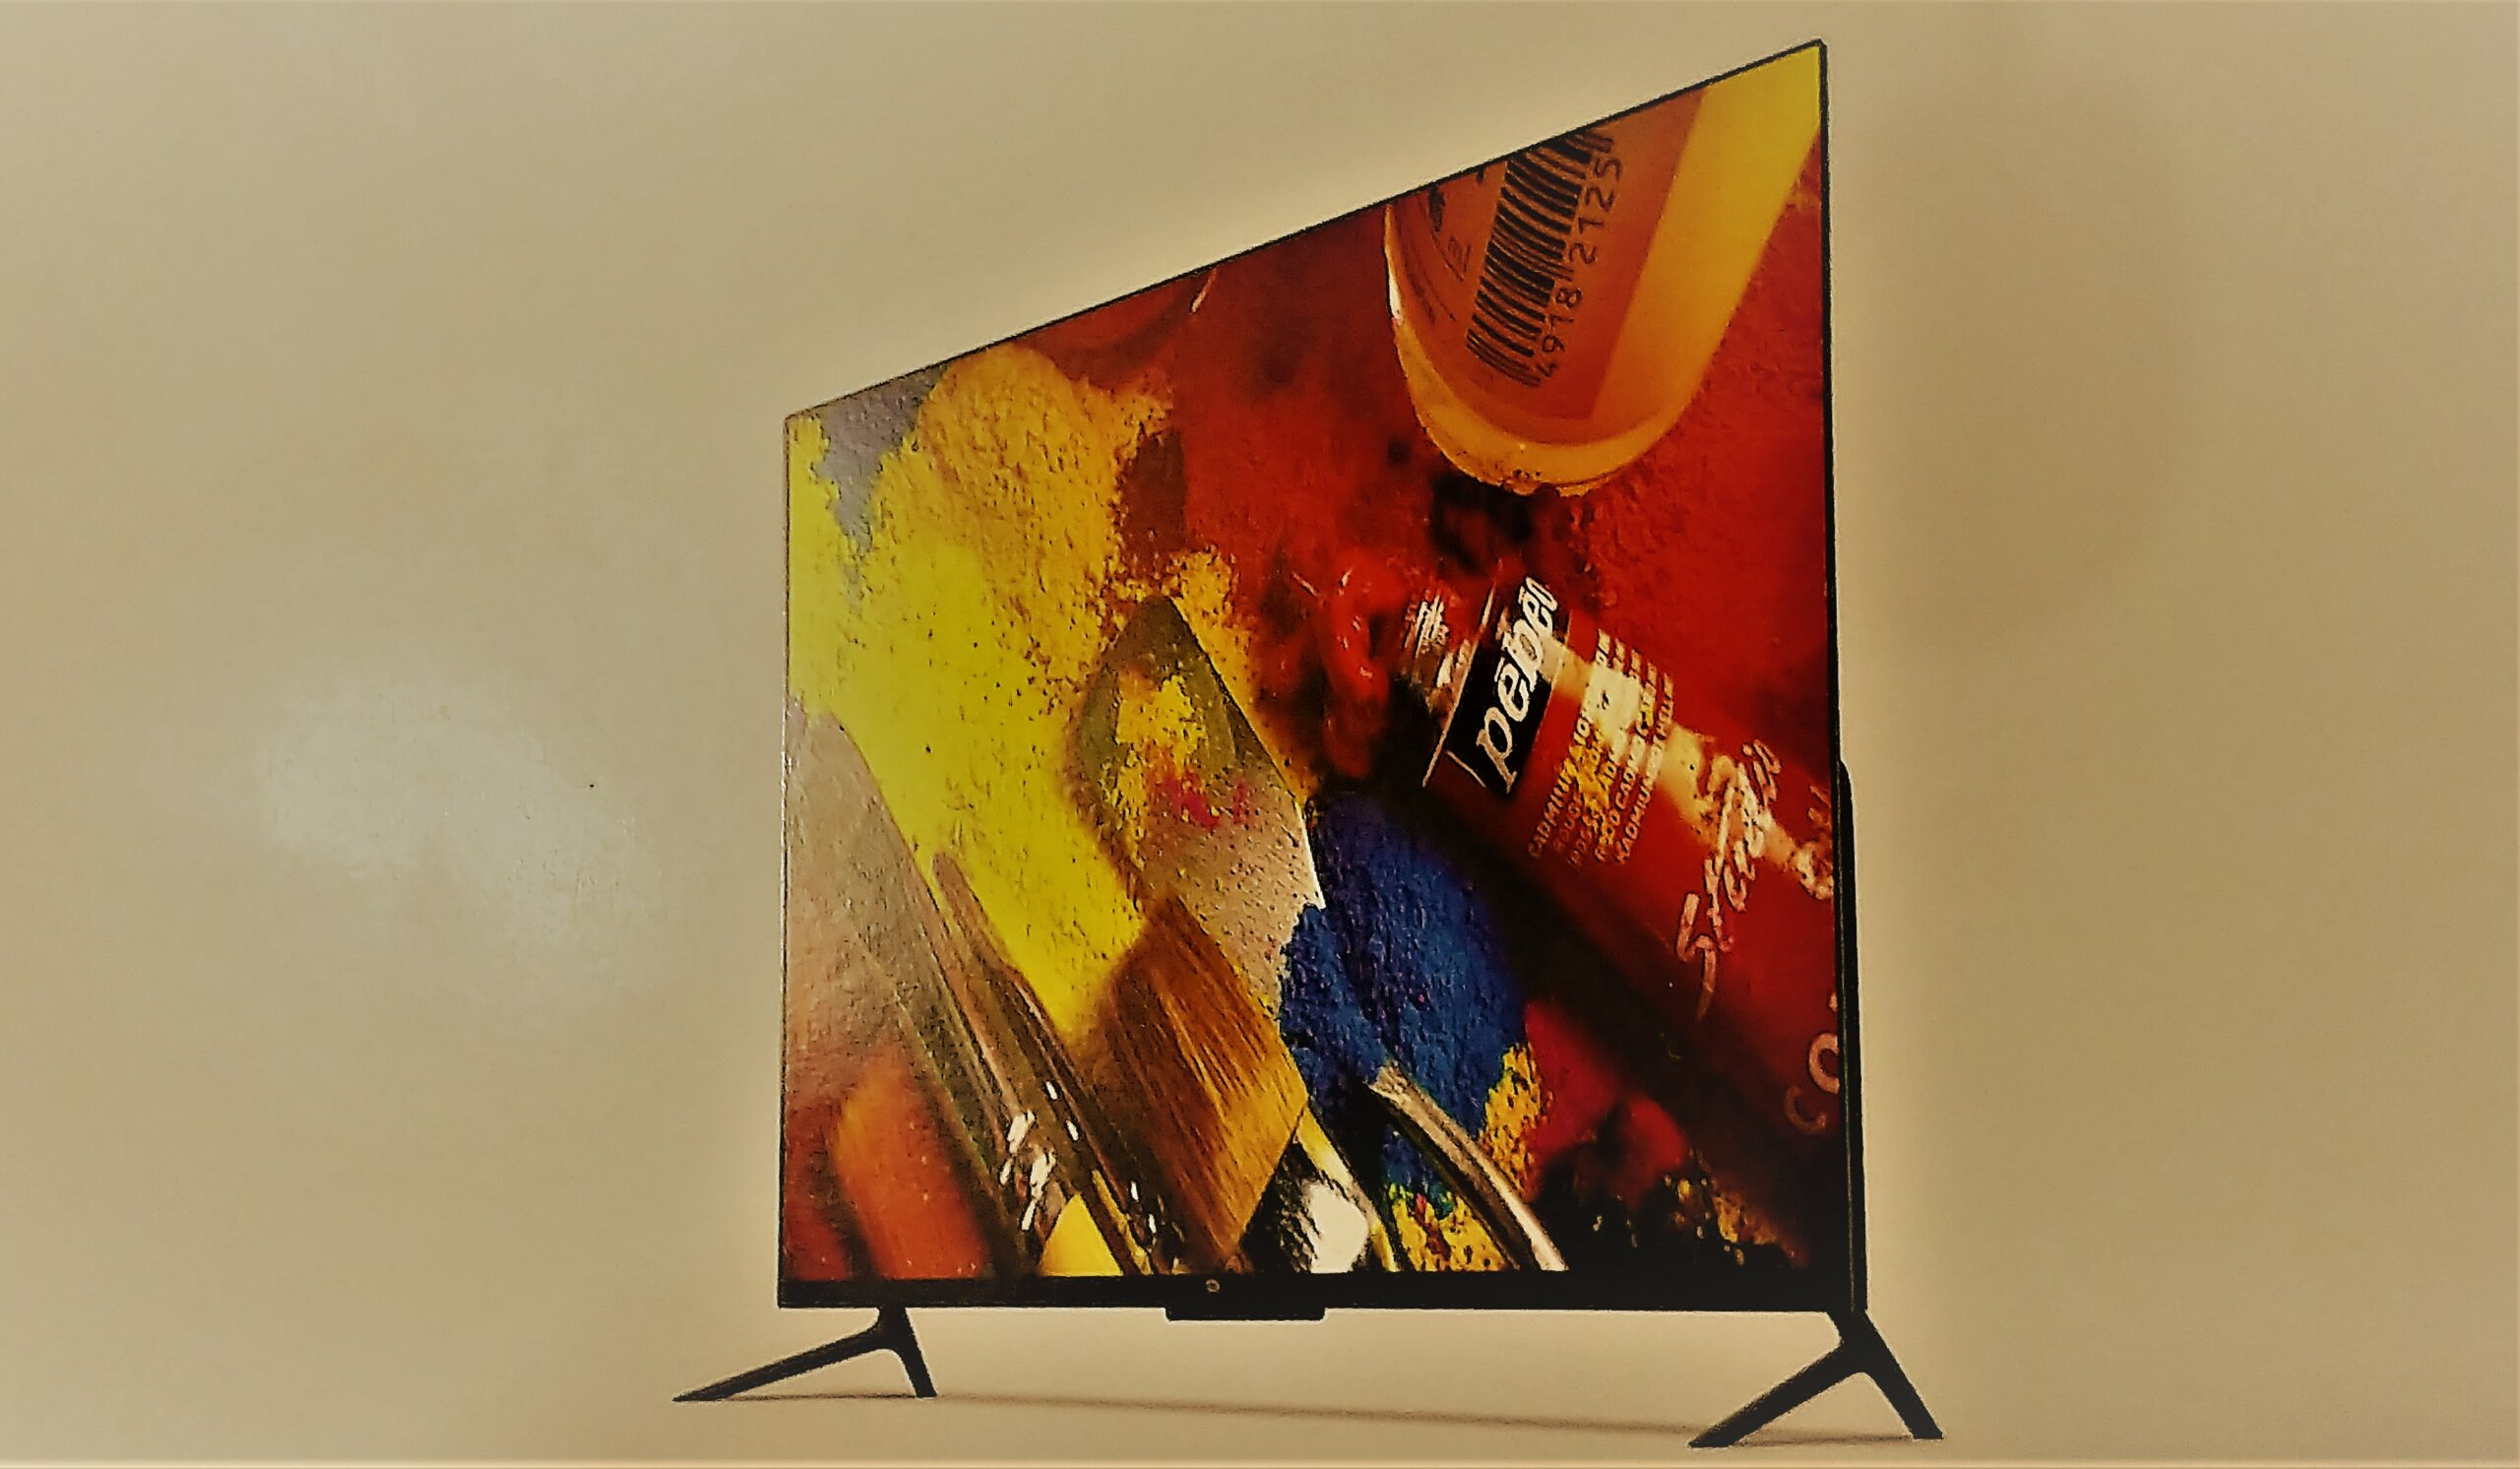 Xiaomi Mi Led TV 4 Review: TV category gets its Jio Moment